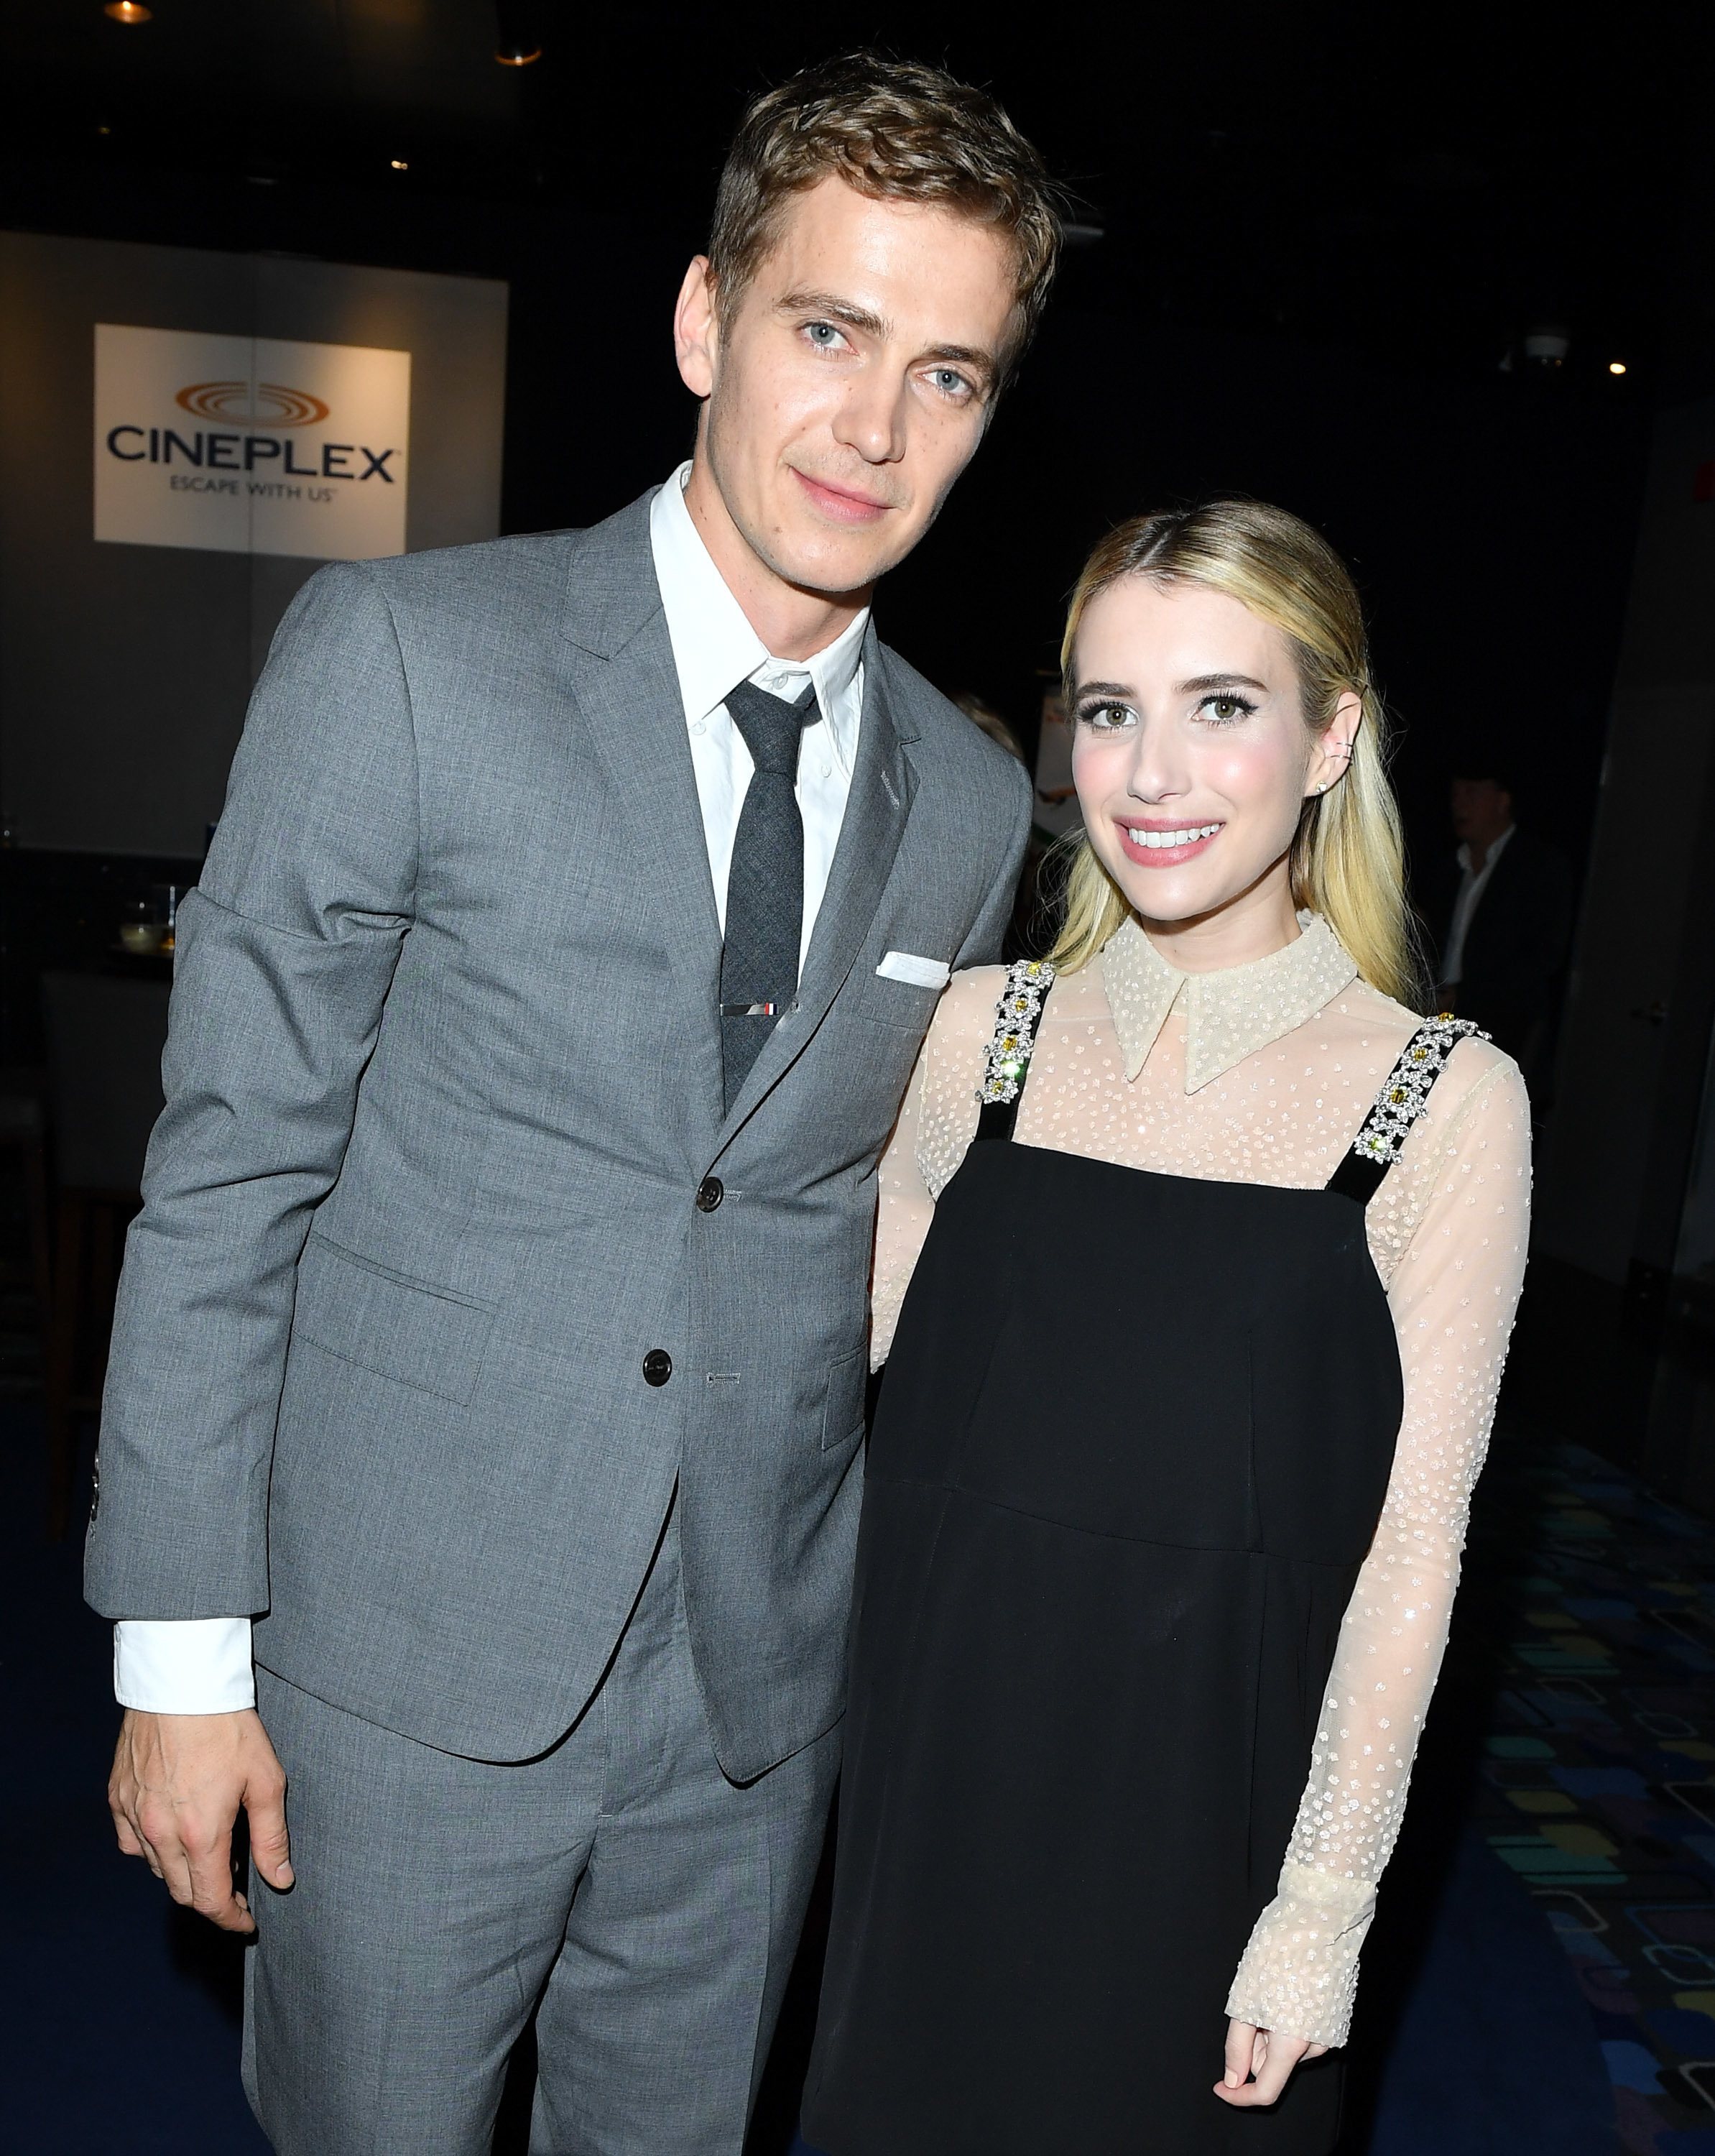 Hayden Christensen and Emma Roberts attend Little Italy World Premiere at Scotiabank Theatre in Toronto on Aug. 22, 2018.